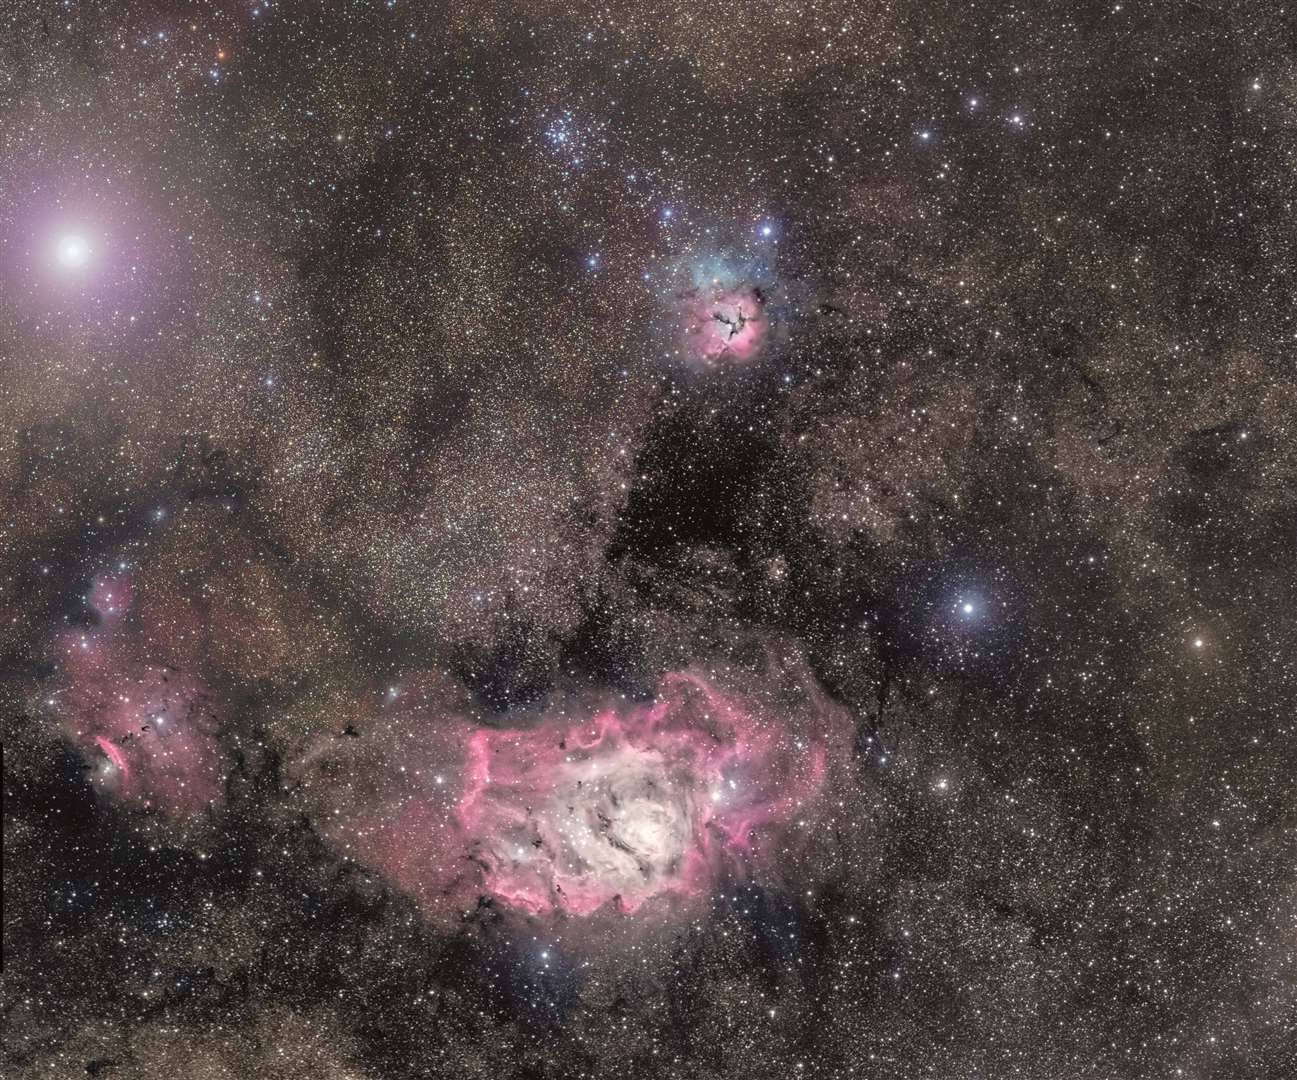 Shropshire-based Pete Williamson captured this image, which is featured in the book 2020 Stargazing. It shows the Lagoon Nebula below the Trifid Nebula, in Sagittarius. Top left is Saturn. The dark dust lanes in the nebulae are made of dust shed by old stars, which forms rocky planets. The image was captured by remote-observing with a Takahashi 106mm telescope at Siding Spring in Australia, using red, green and blue filters. Picture: Galaxy Picture Library/Pete Williamson (18337390)